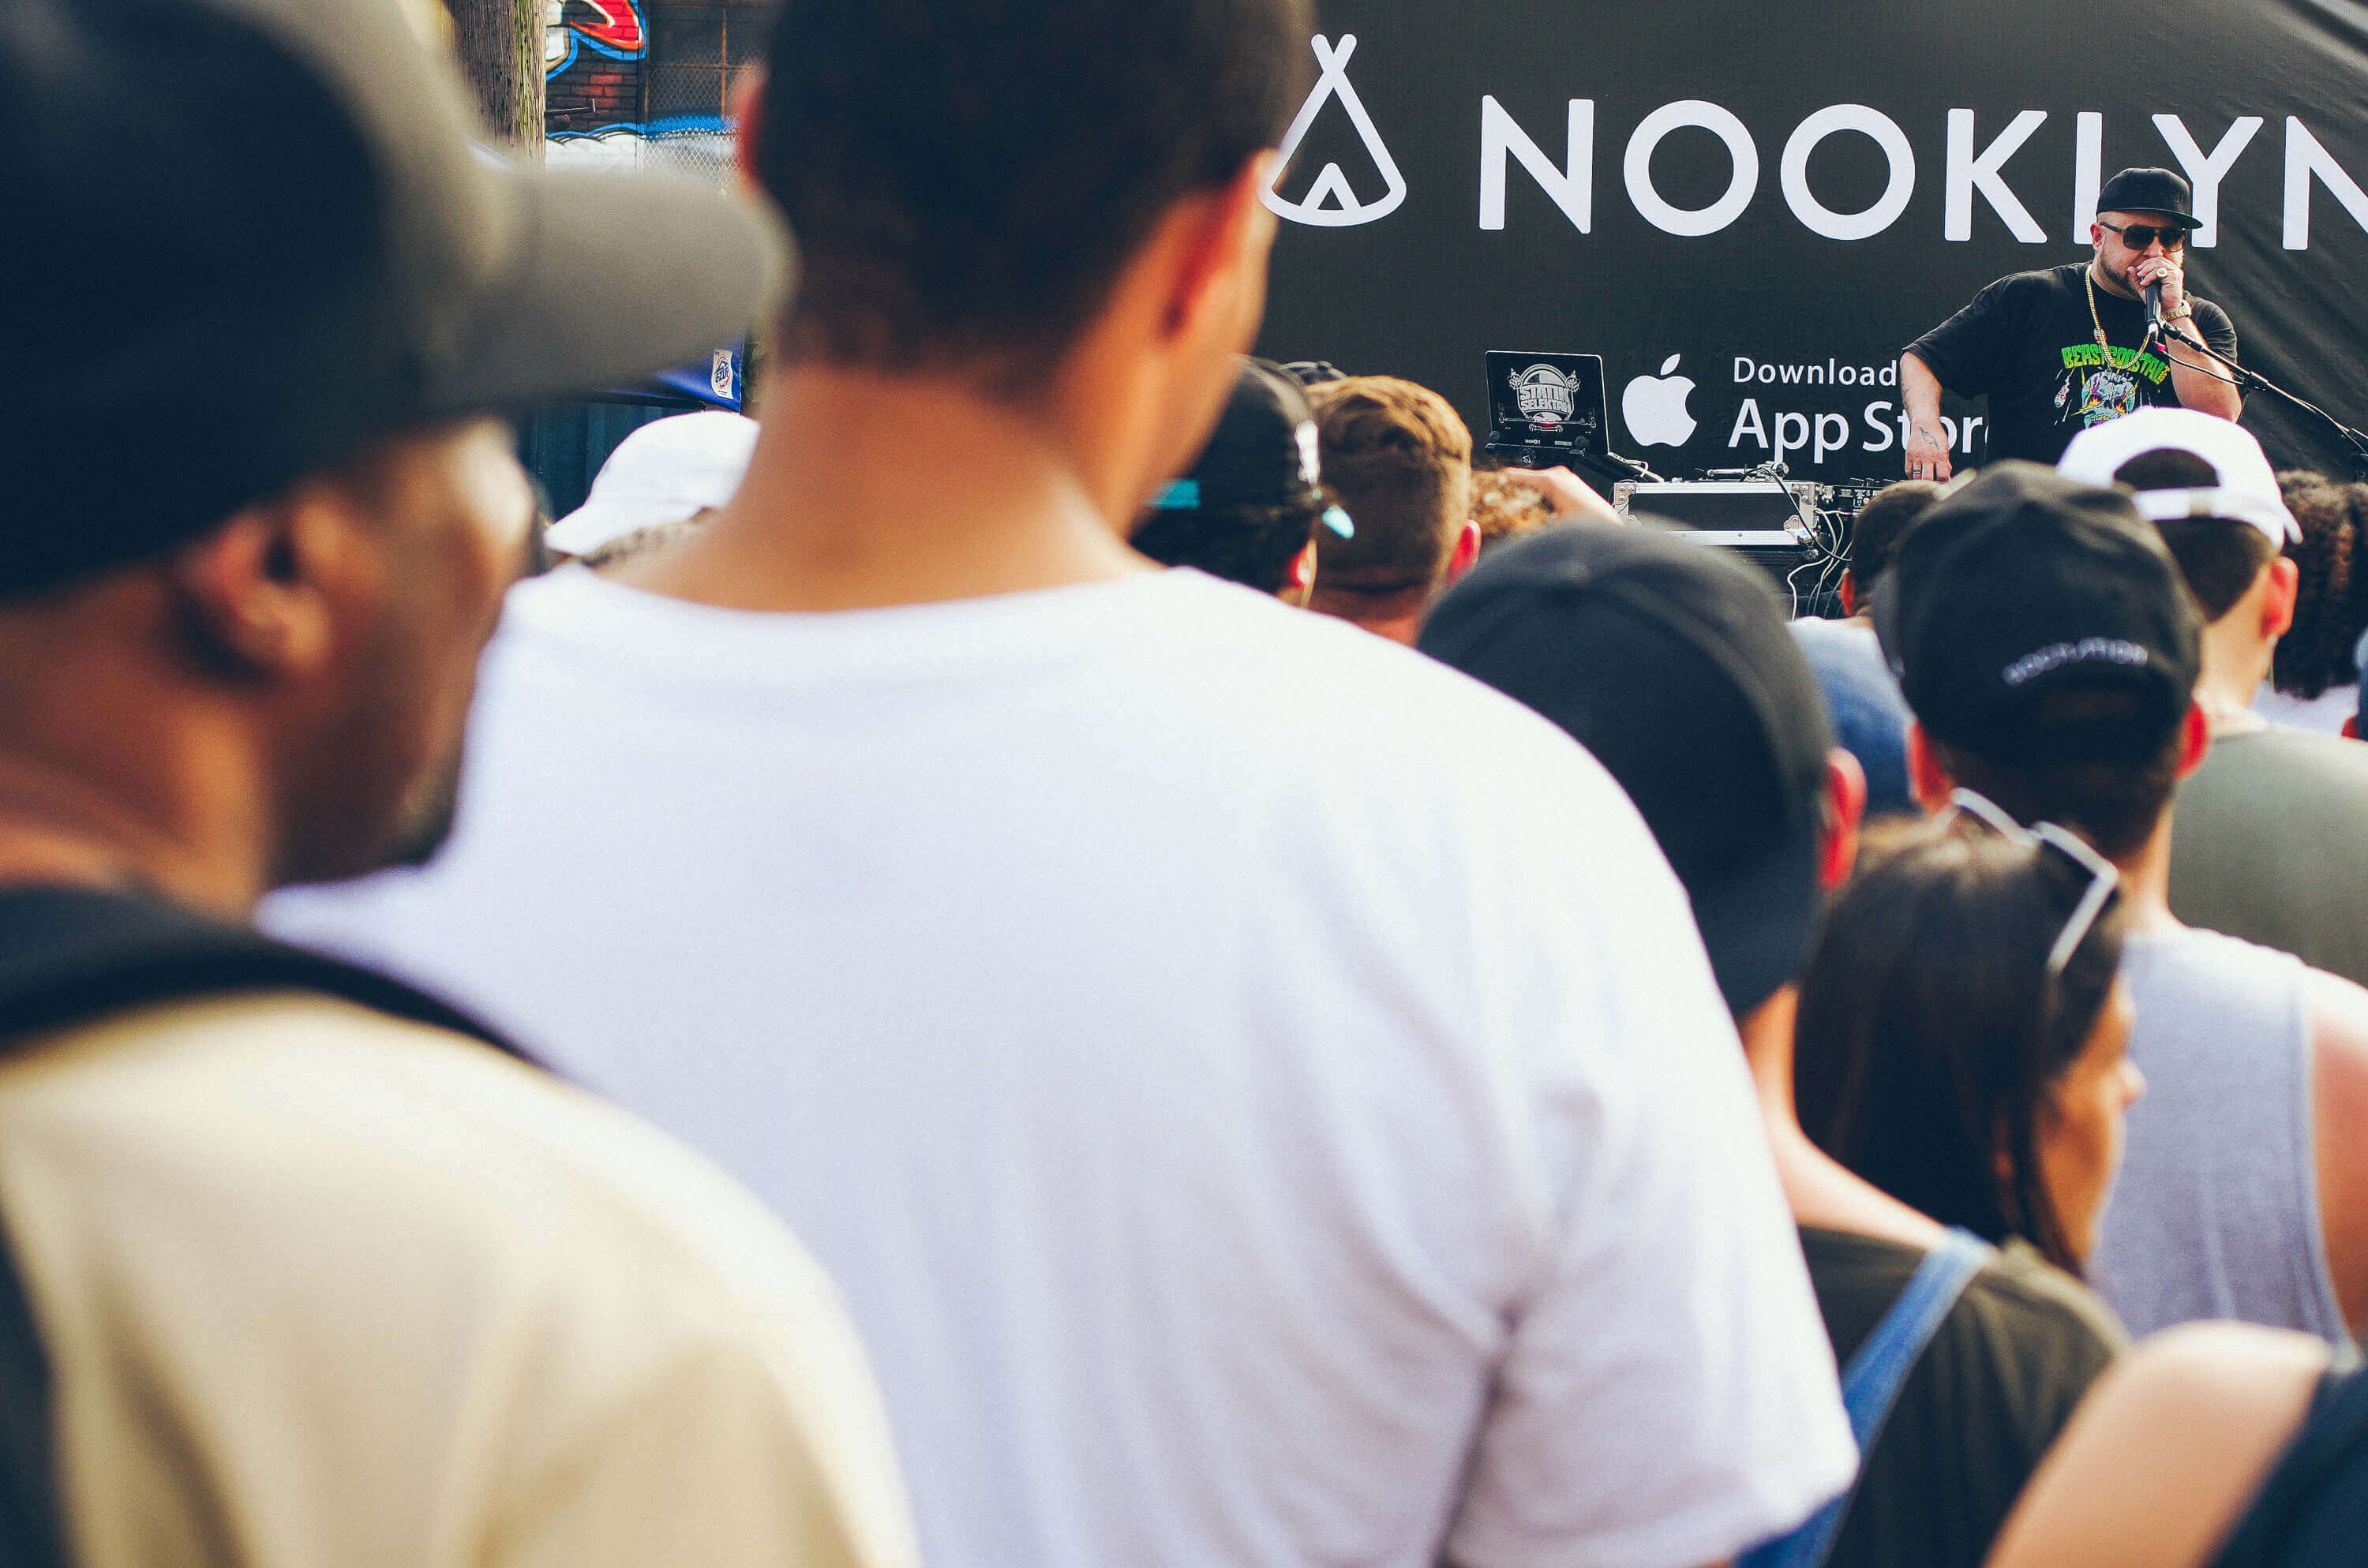 Nooklyn HipHop DJ stage for the Bushwick Collective Block Party 2016